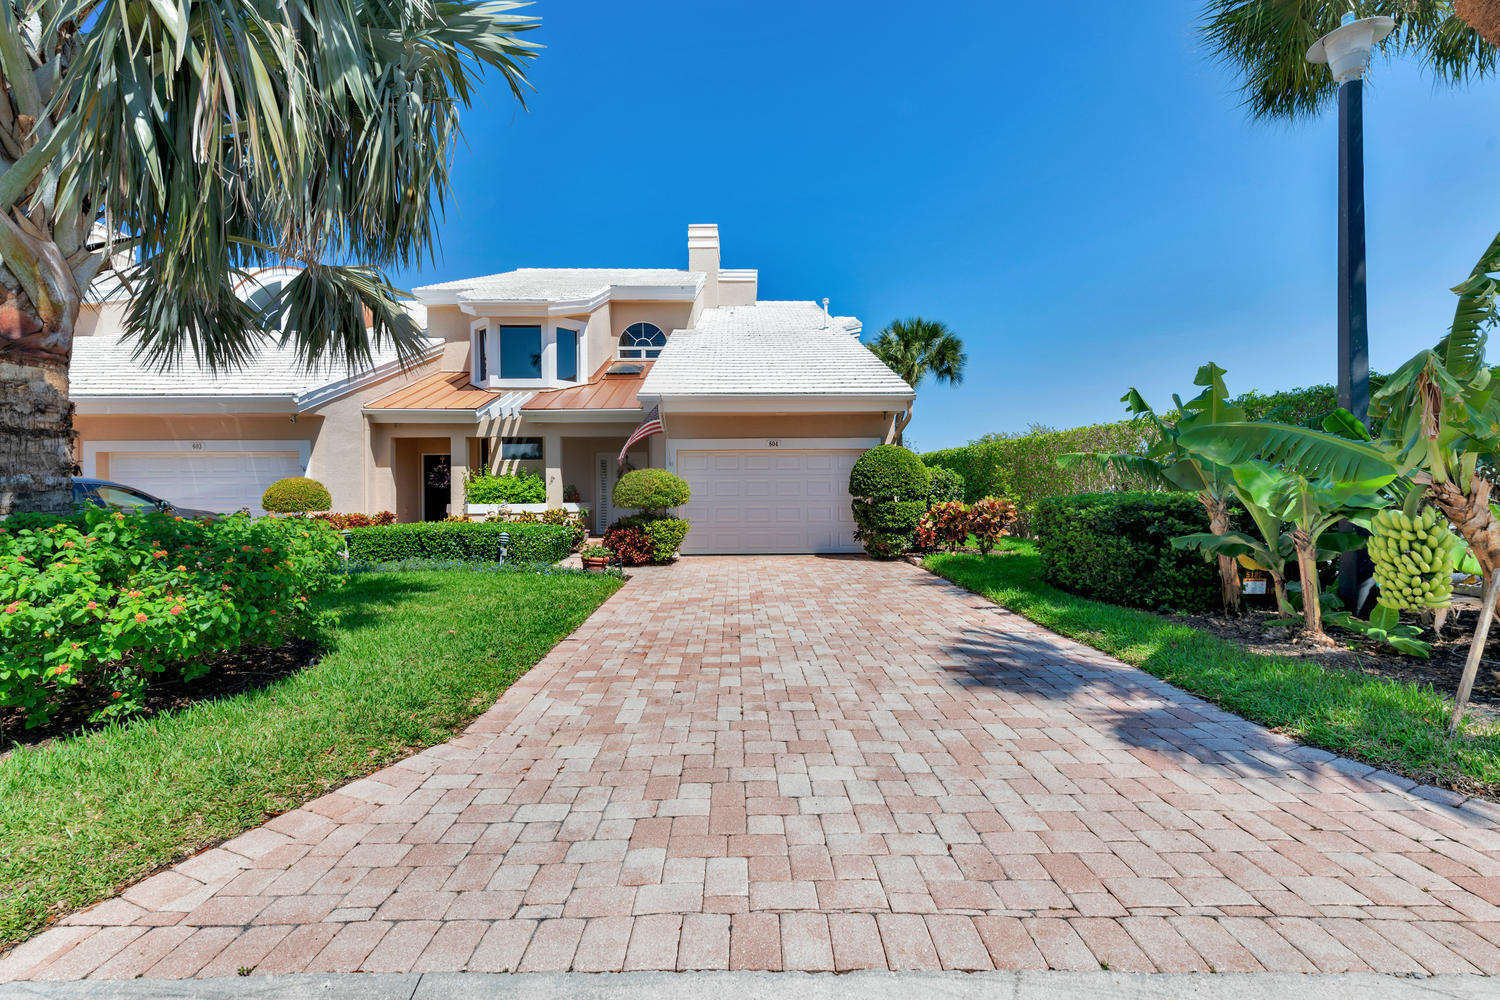 604 Captains Way 603, Jupiter, Florida 33477, 2 Bedrooms Bedrooms, ,2 BathroomsBathrooms,A,Condominium,Captains,RX-10513115